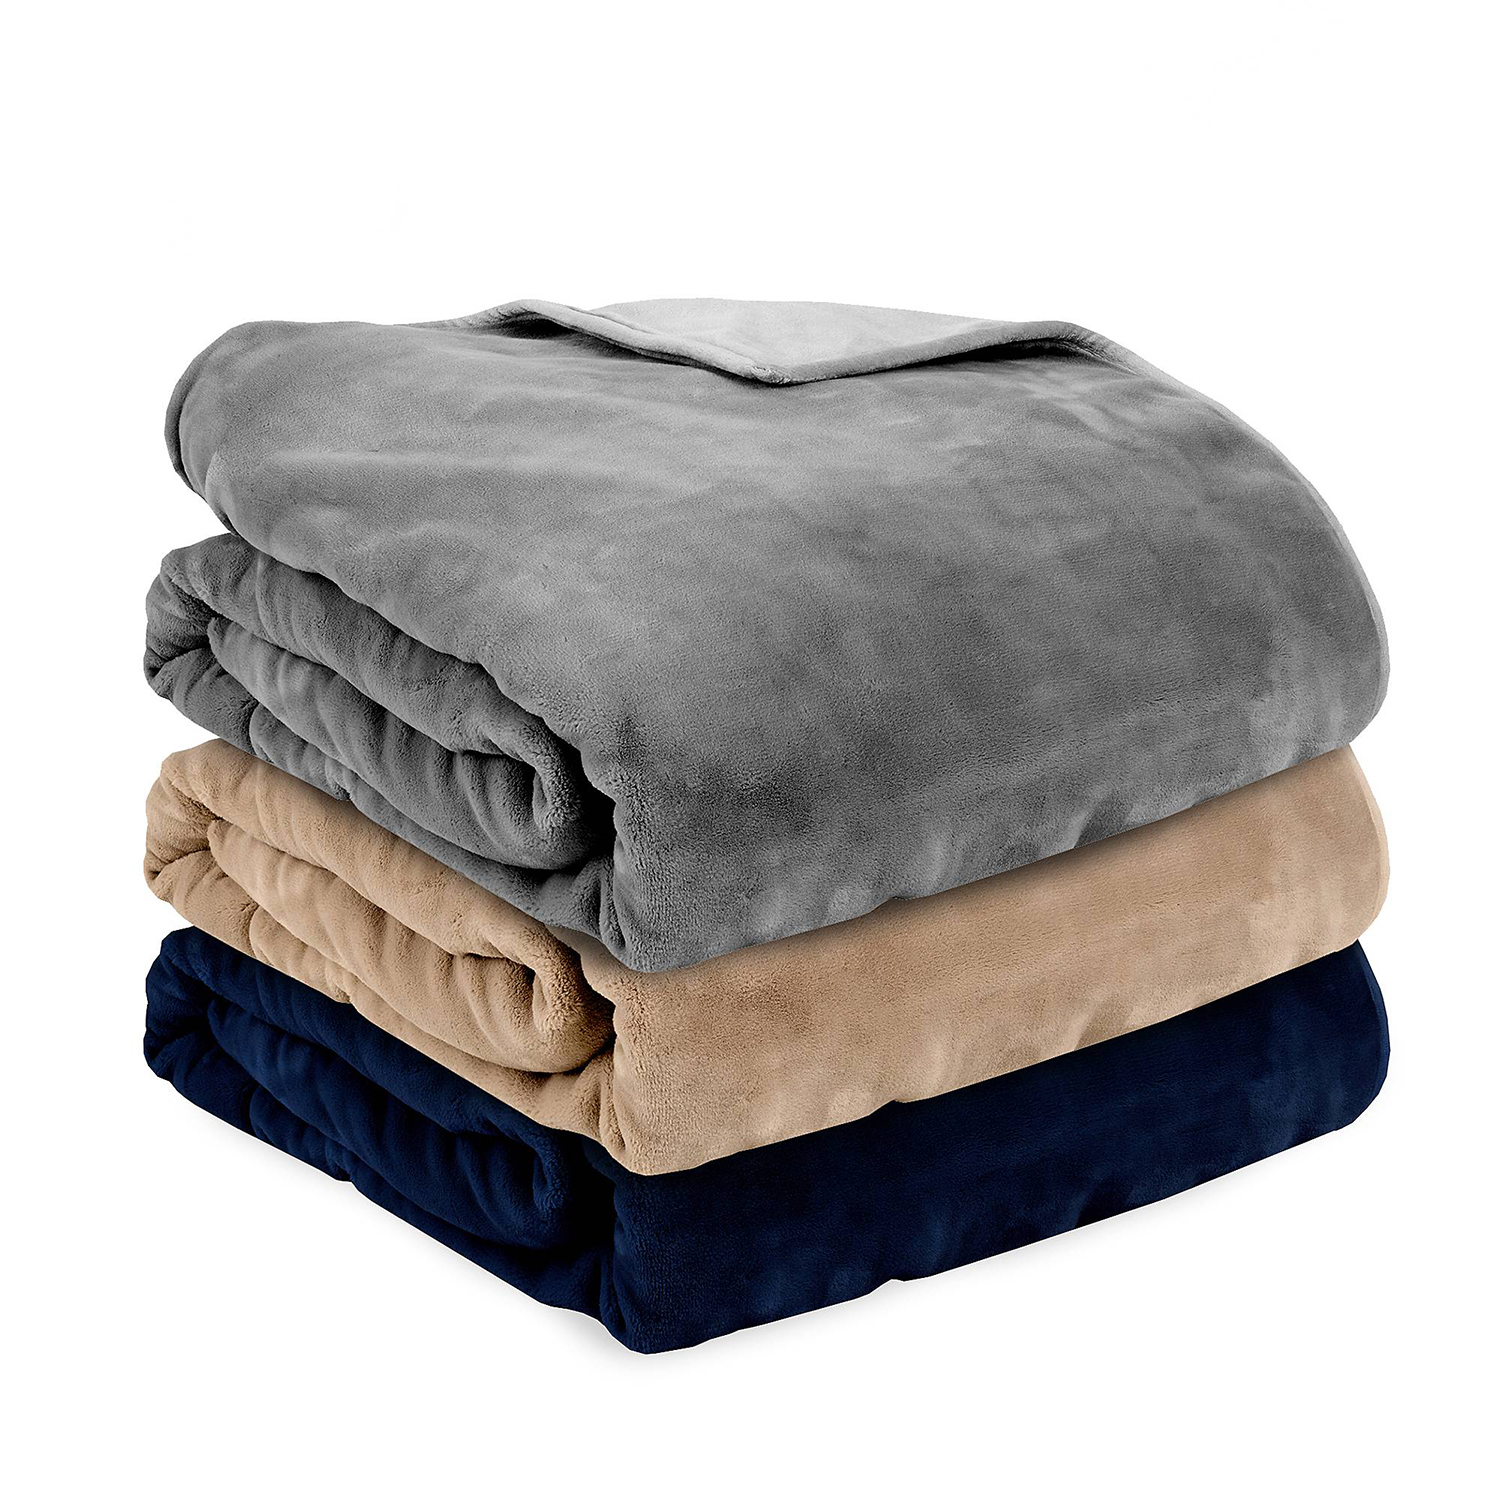 Therapedic Reversible Weighted Blanket